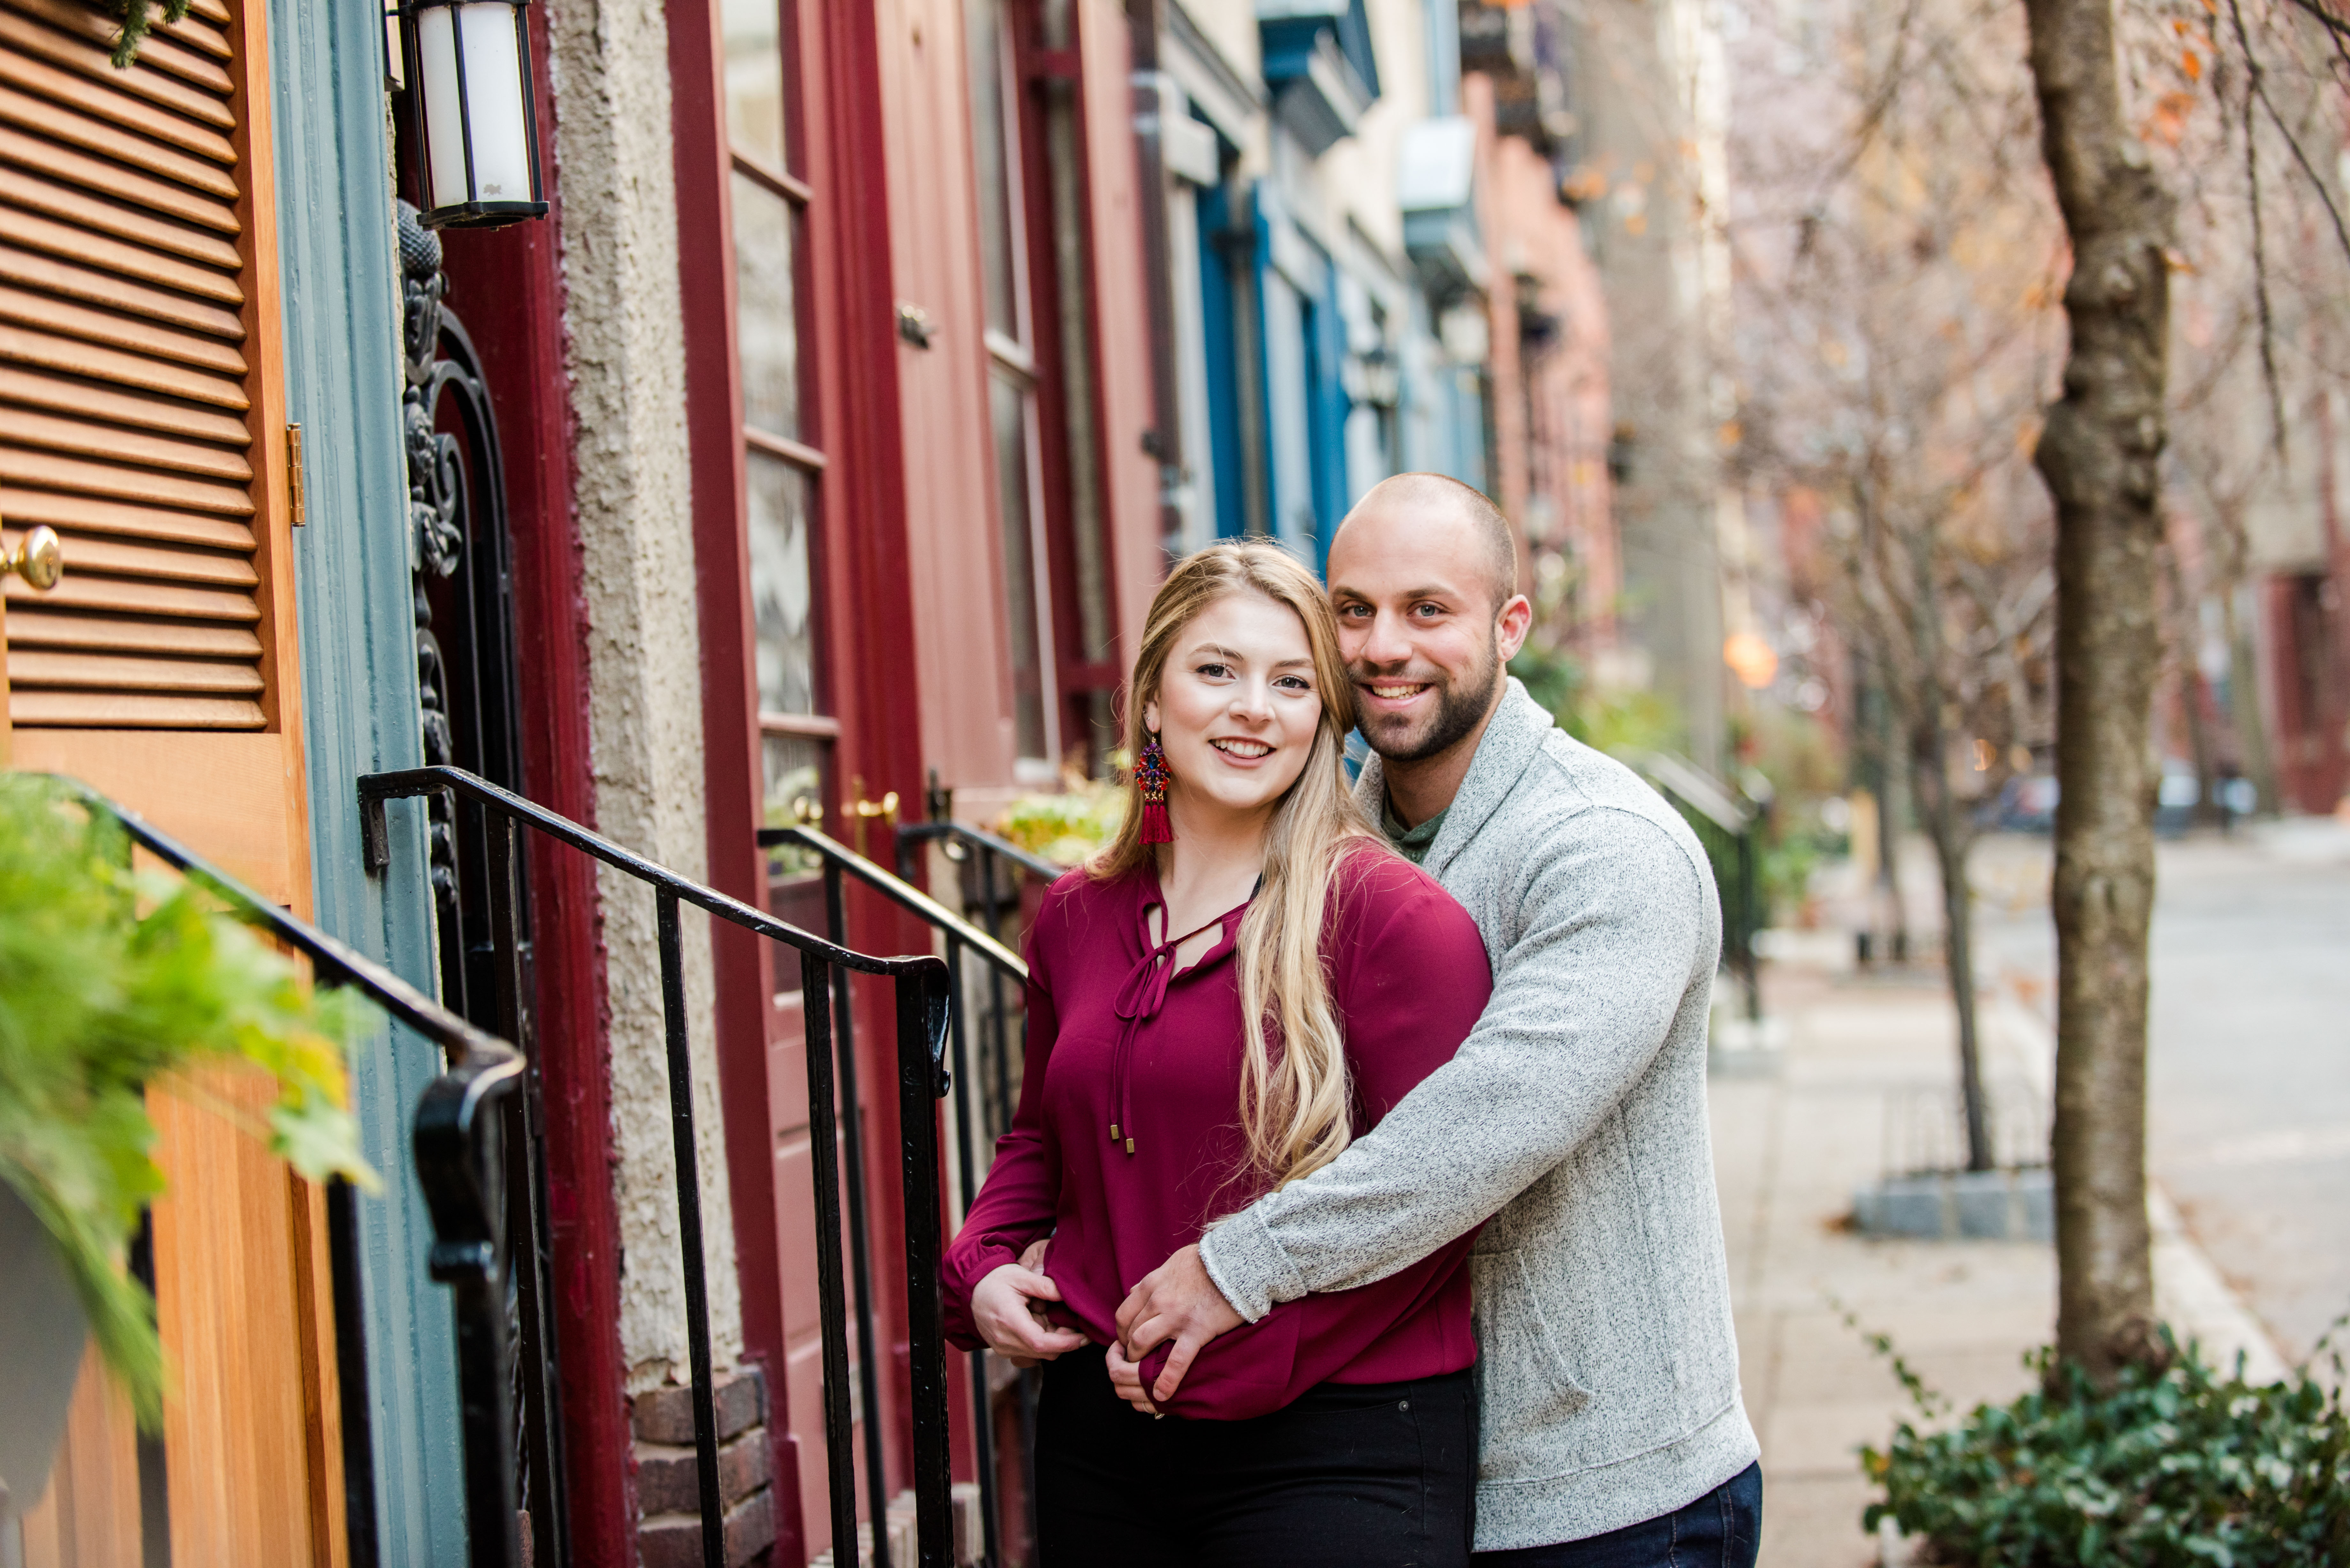 Engagement Photos Philadelphia Pennsylvania City Portraits Andrea Krout Photography-9